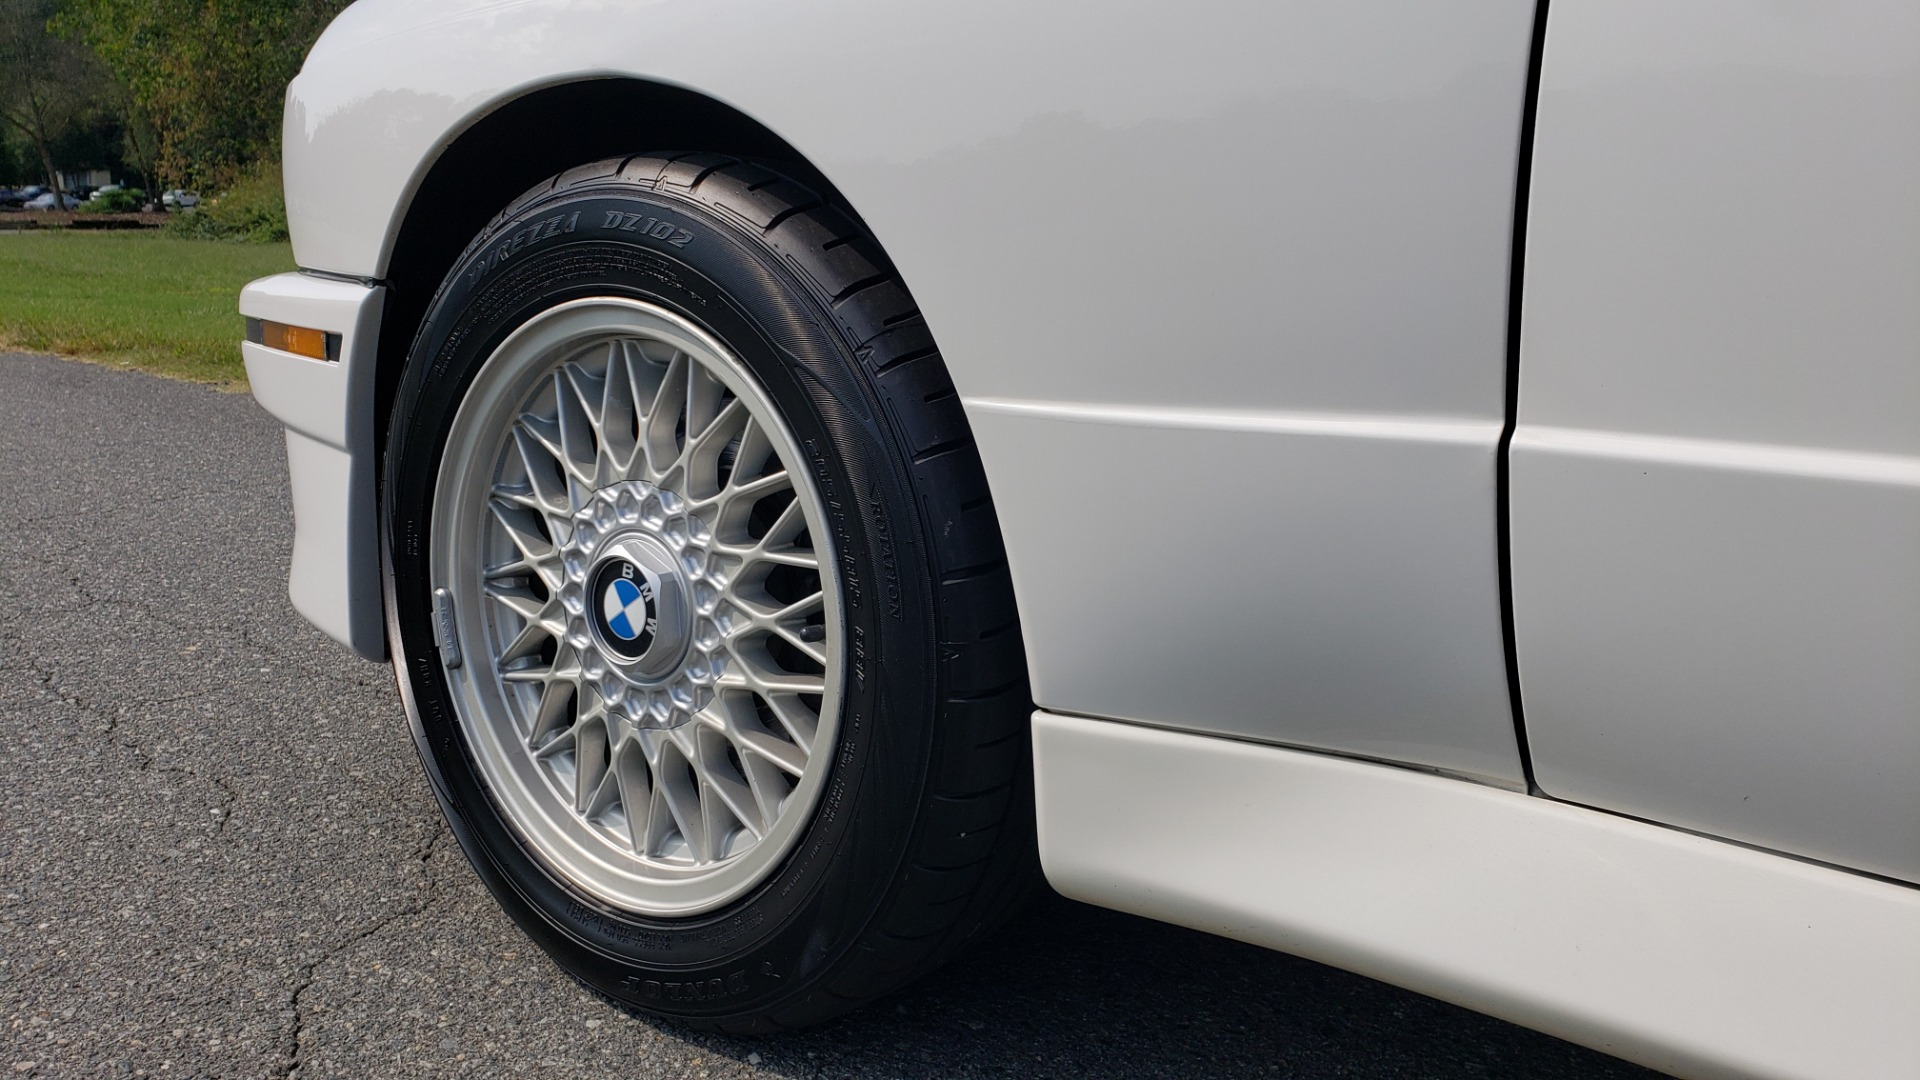 Used 1989 BMW M3 COUPE 2DR / 5-SPEED MAN / LOW MILES / SUPER CLEAN for sale Sold at Formula Imports in Charlotte NC 28227 21